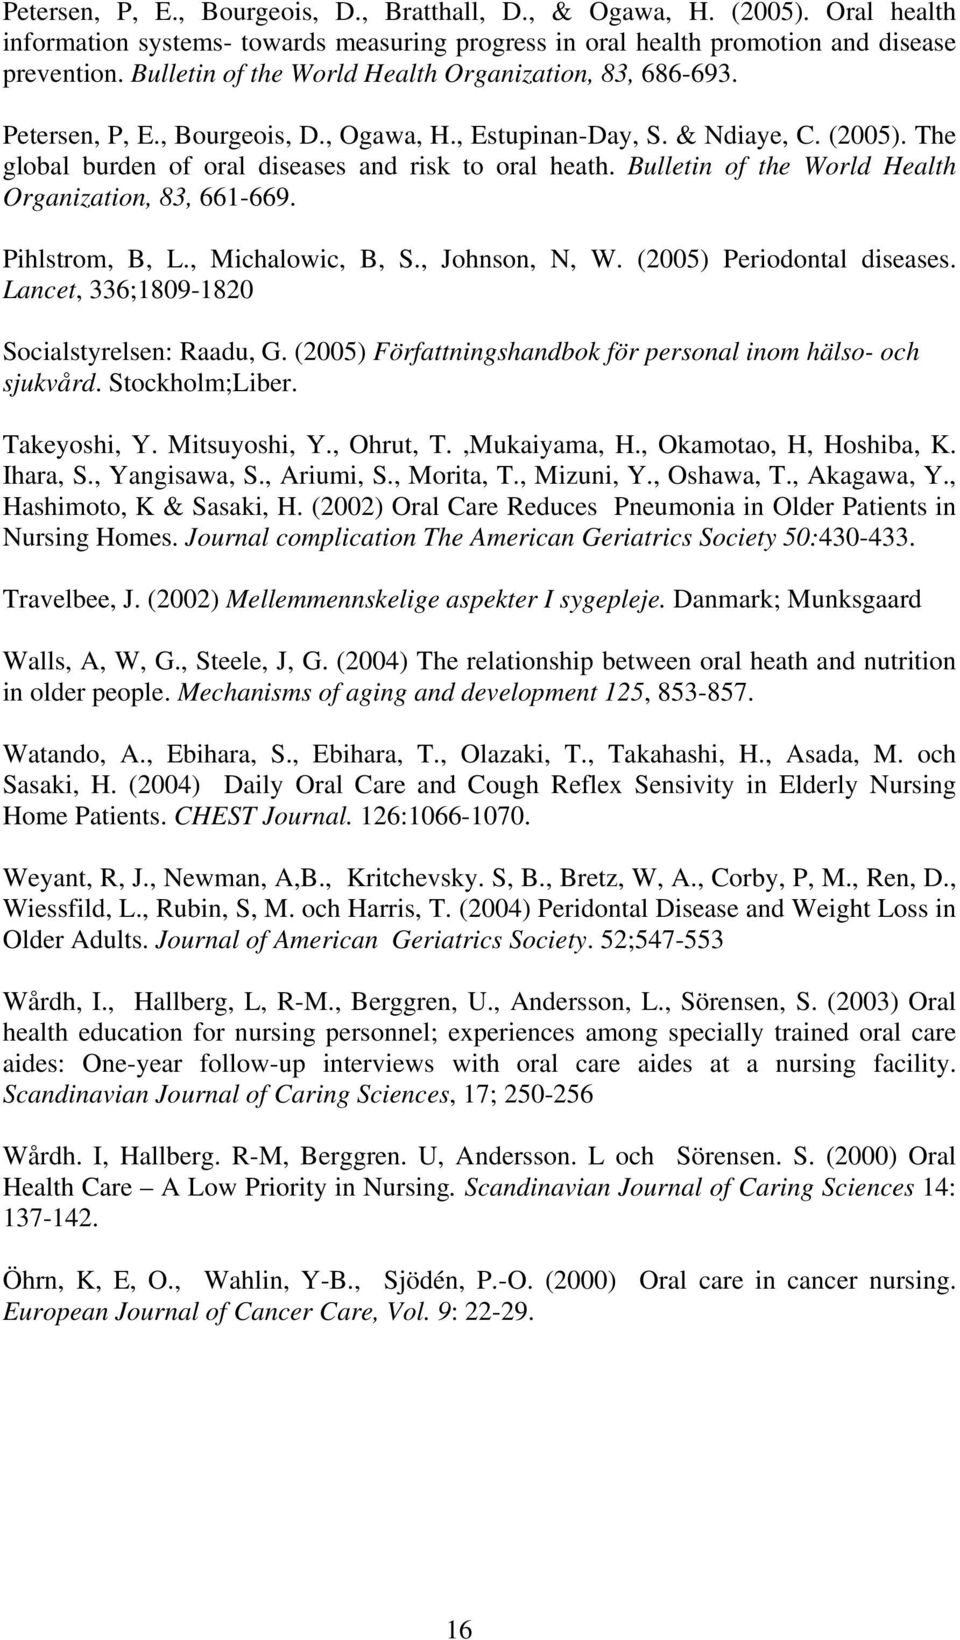 Bulletin of the World Health Organization, 83, 661-669. Pihlstrom, B, L., Michalowic, B, S., Johnson, N, W. (2005) Periodontal diseases. Lancet, 336;1809-1820 Socialstyrelsen: Raadu, G.